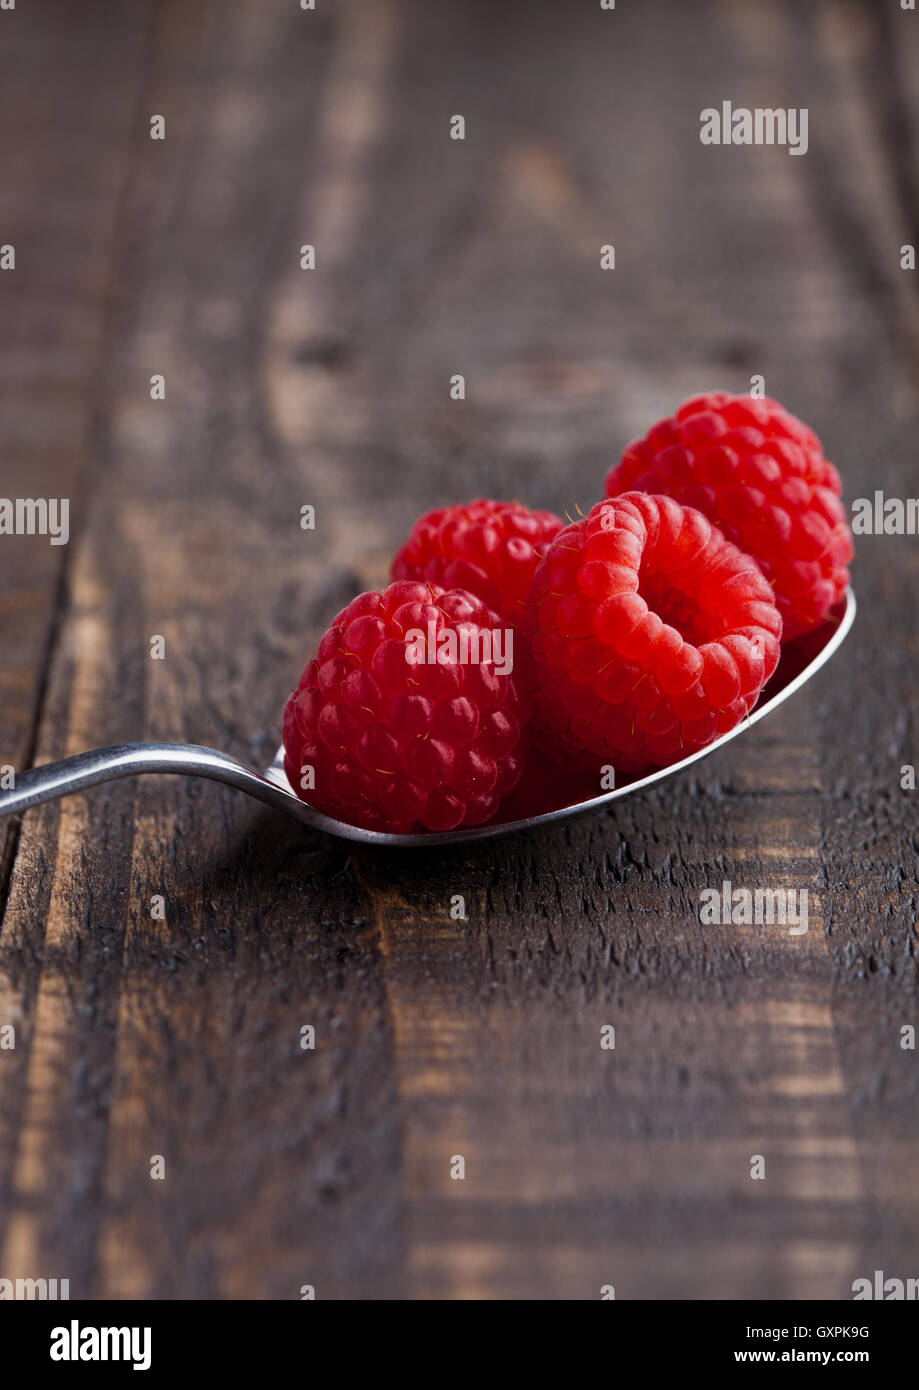 Raspberries on old spoon on grunge wooden board. Natural healthy food. Still life photography - Stock Image